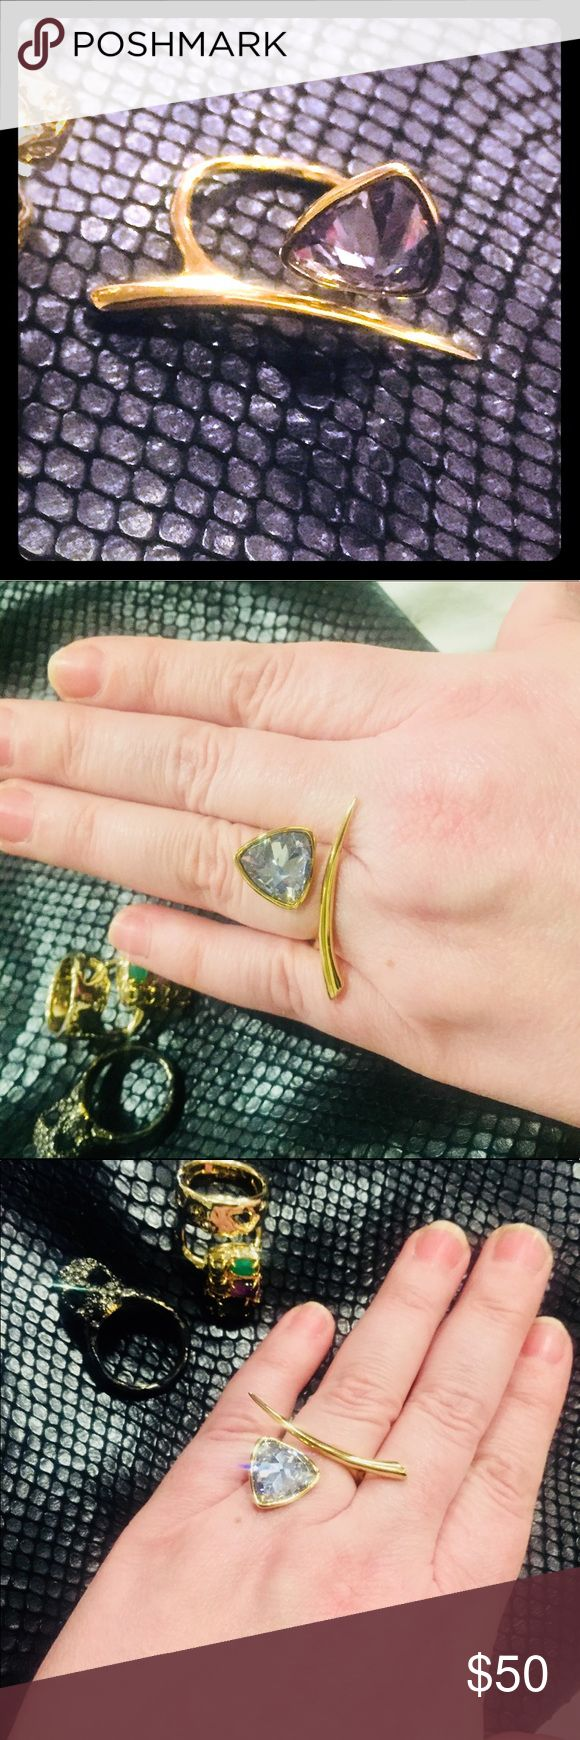 Gold plated crystal ring. New. Alexis Bittar adjustable size 6-9 ring new. My last one for sale at this time. Very flashy yet minimalistic in style. Alexis Bittar Jewelry Rings